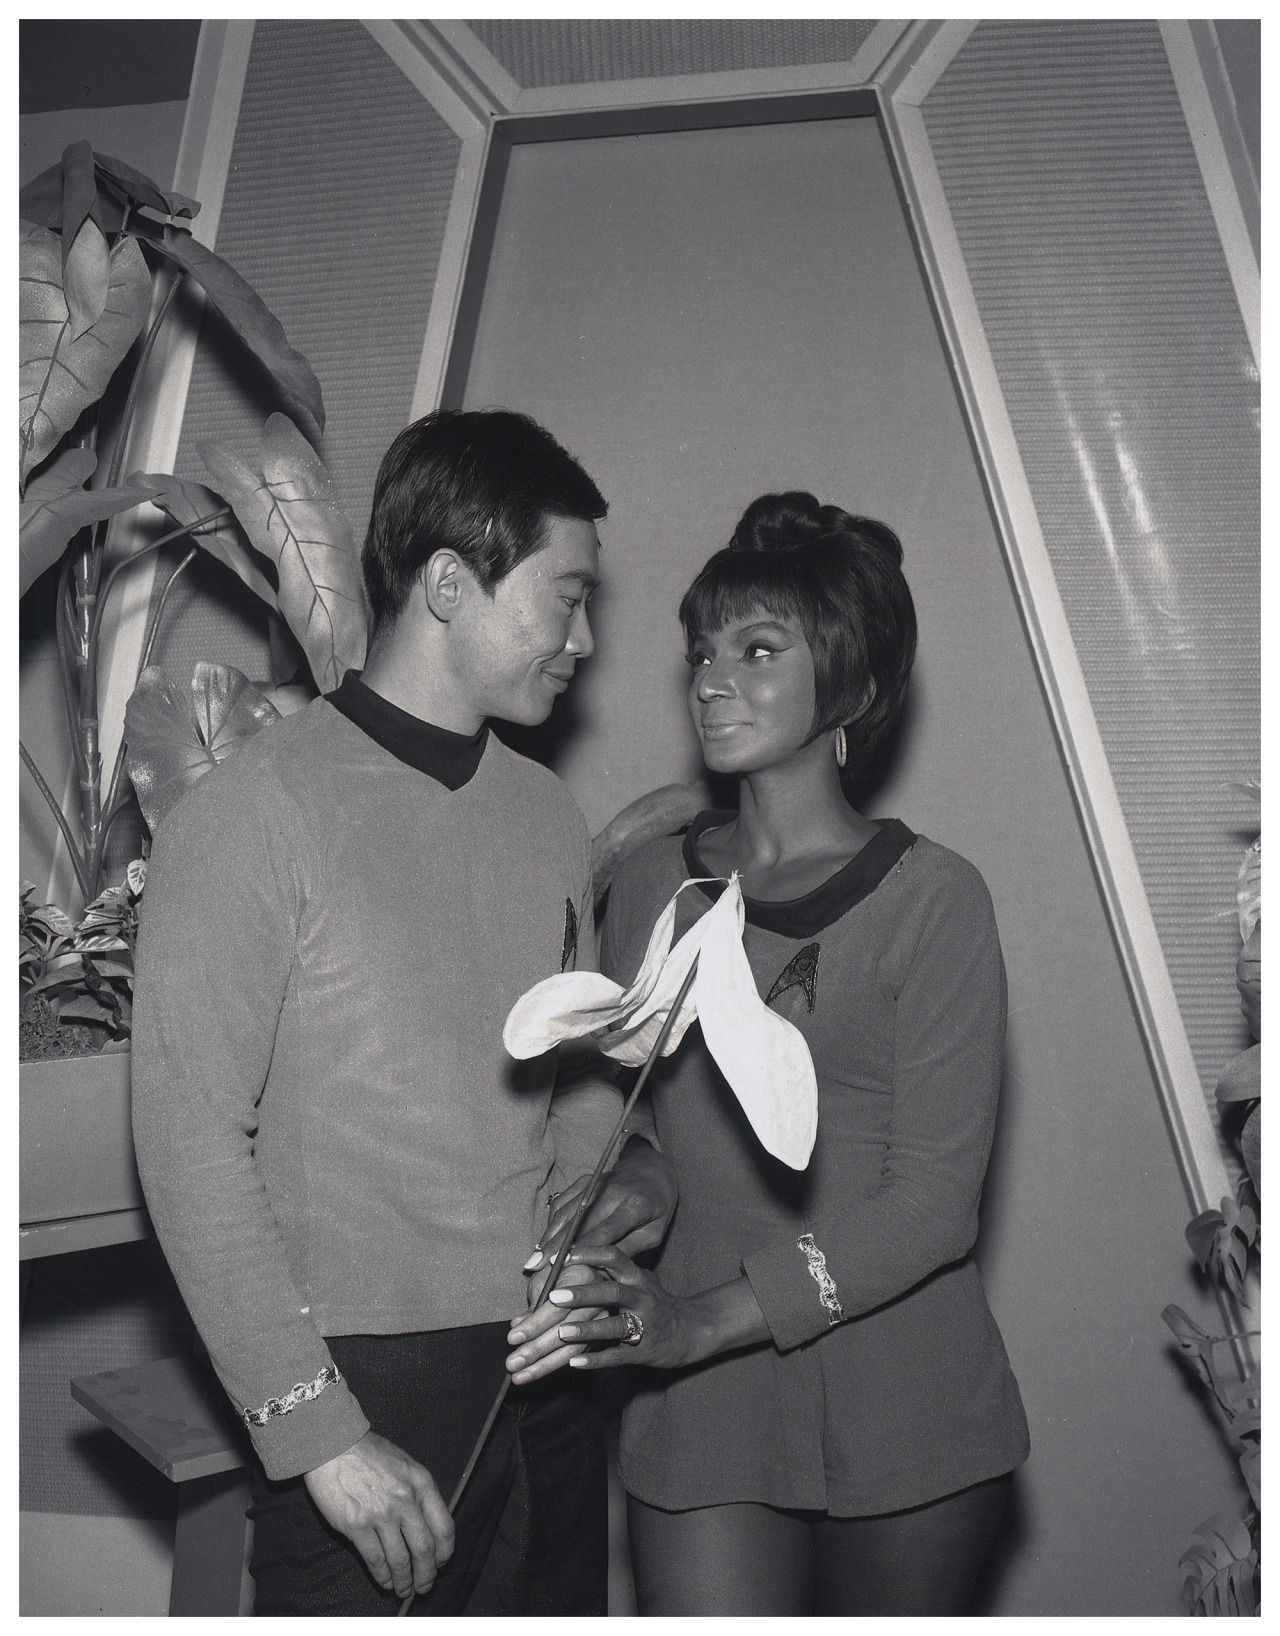 Vintage Photo of George Takei and Nichelle Nichols for Star Trek Promo